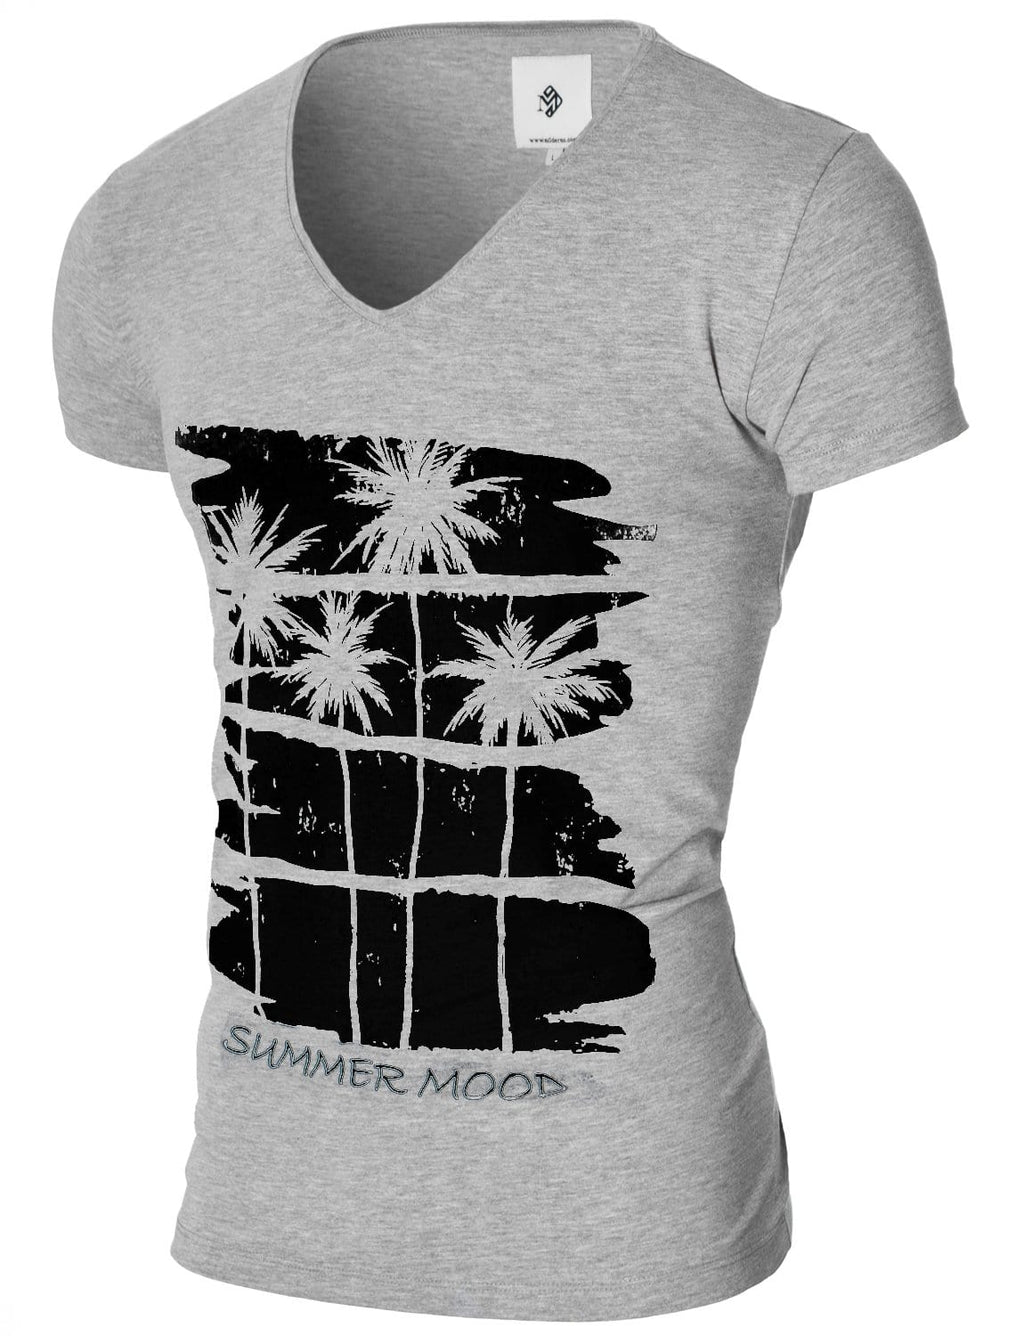 Mens Graphic Tee Summer Mood Gray (MOD2012VN)